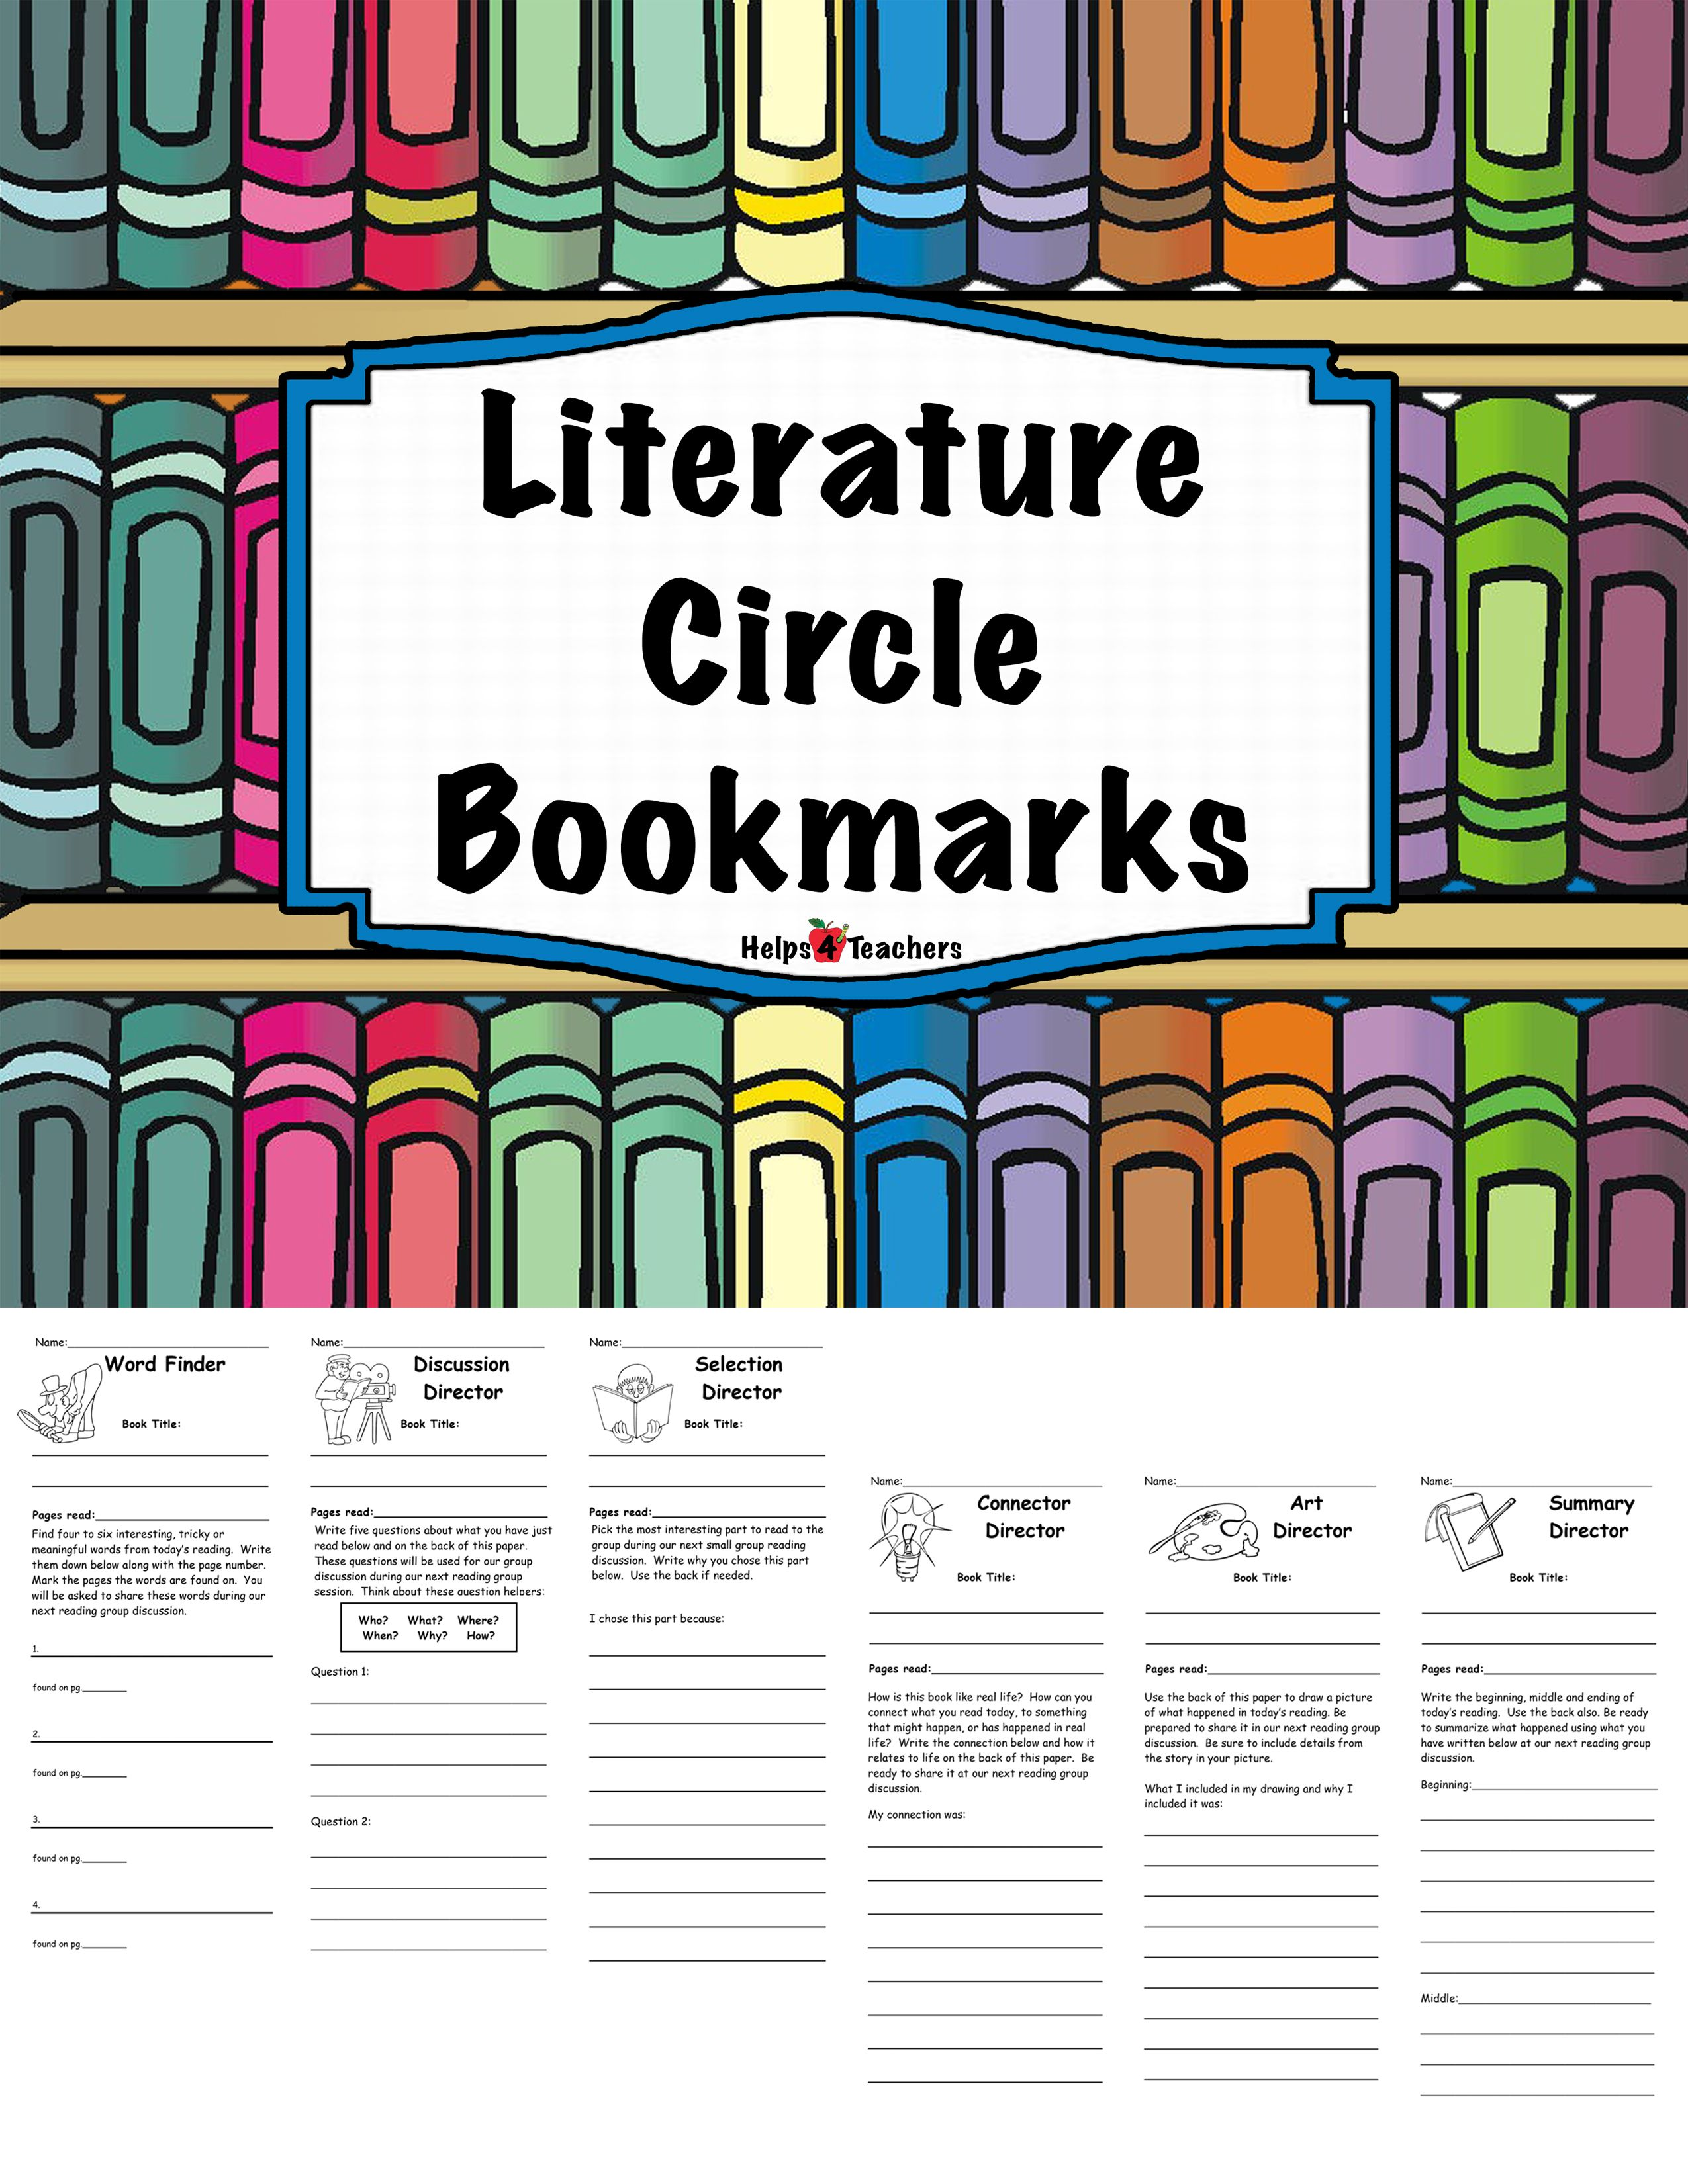 Six Interactive Literature Circle Bookmarks They